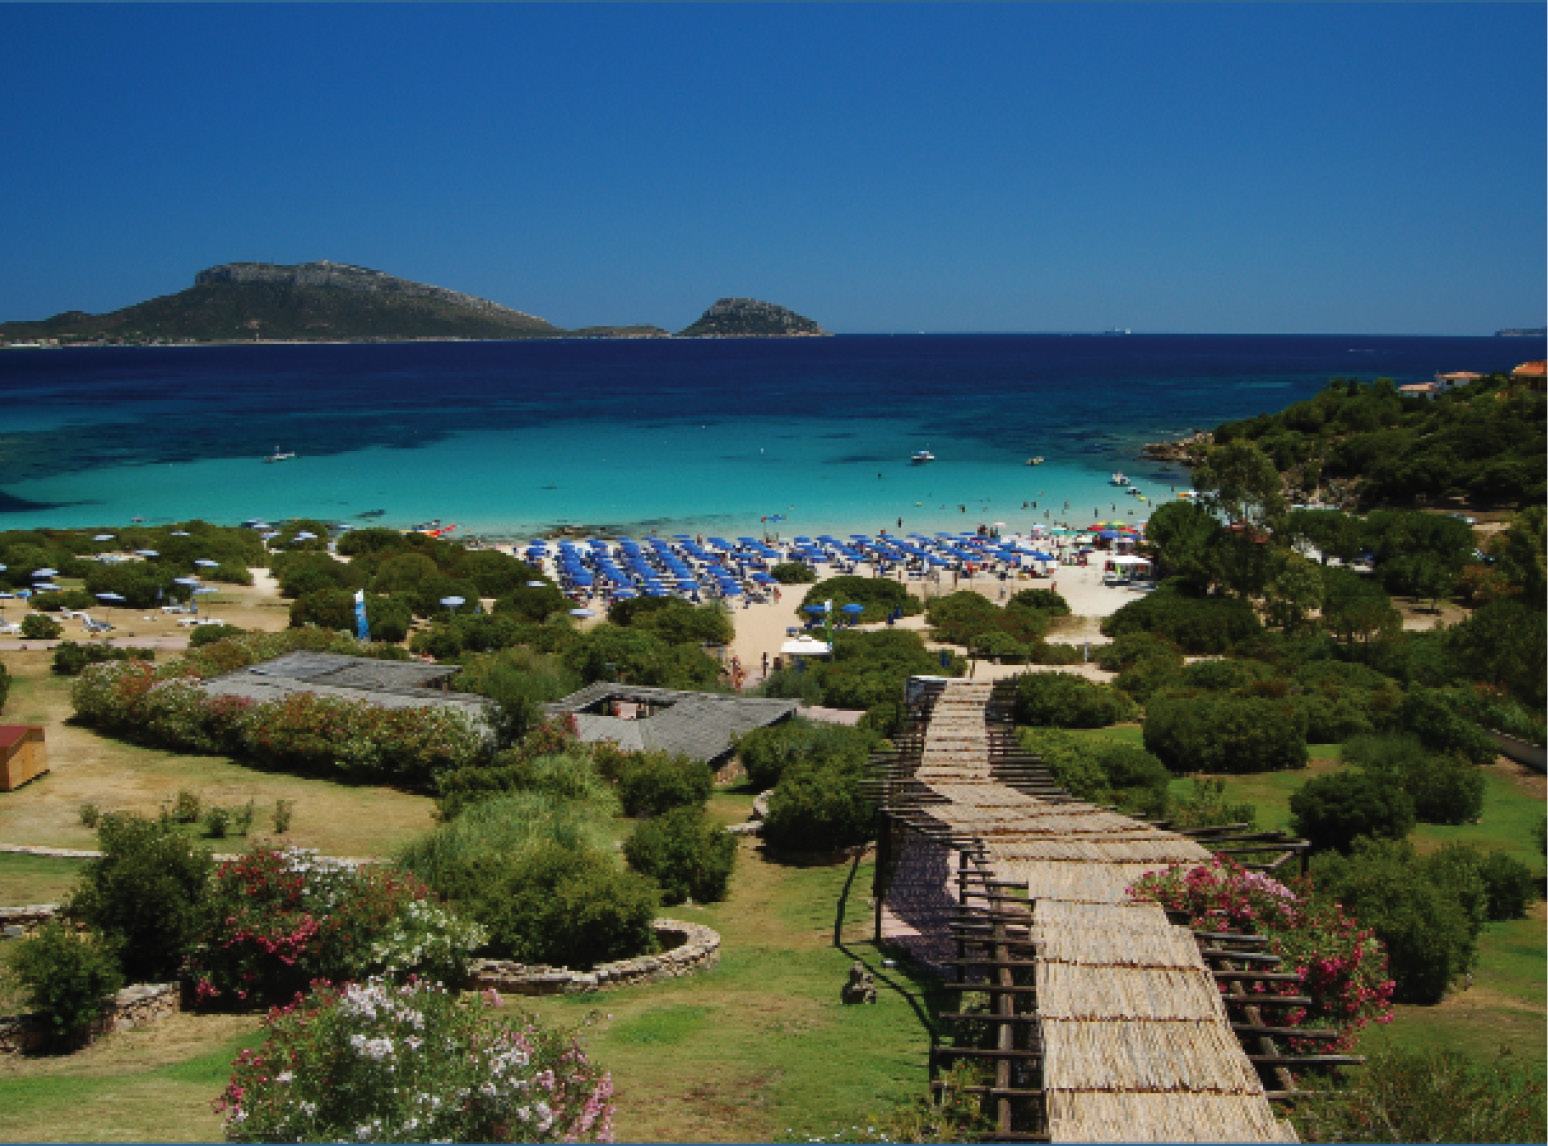 The 10 best beaches in sardinia italy travel and life for Costa smeralda sardegna